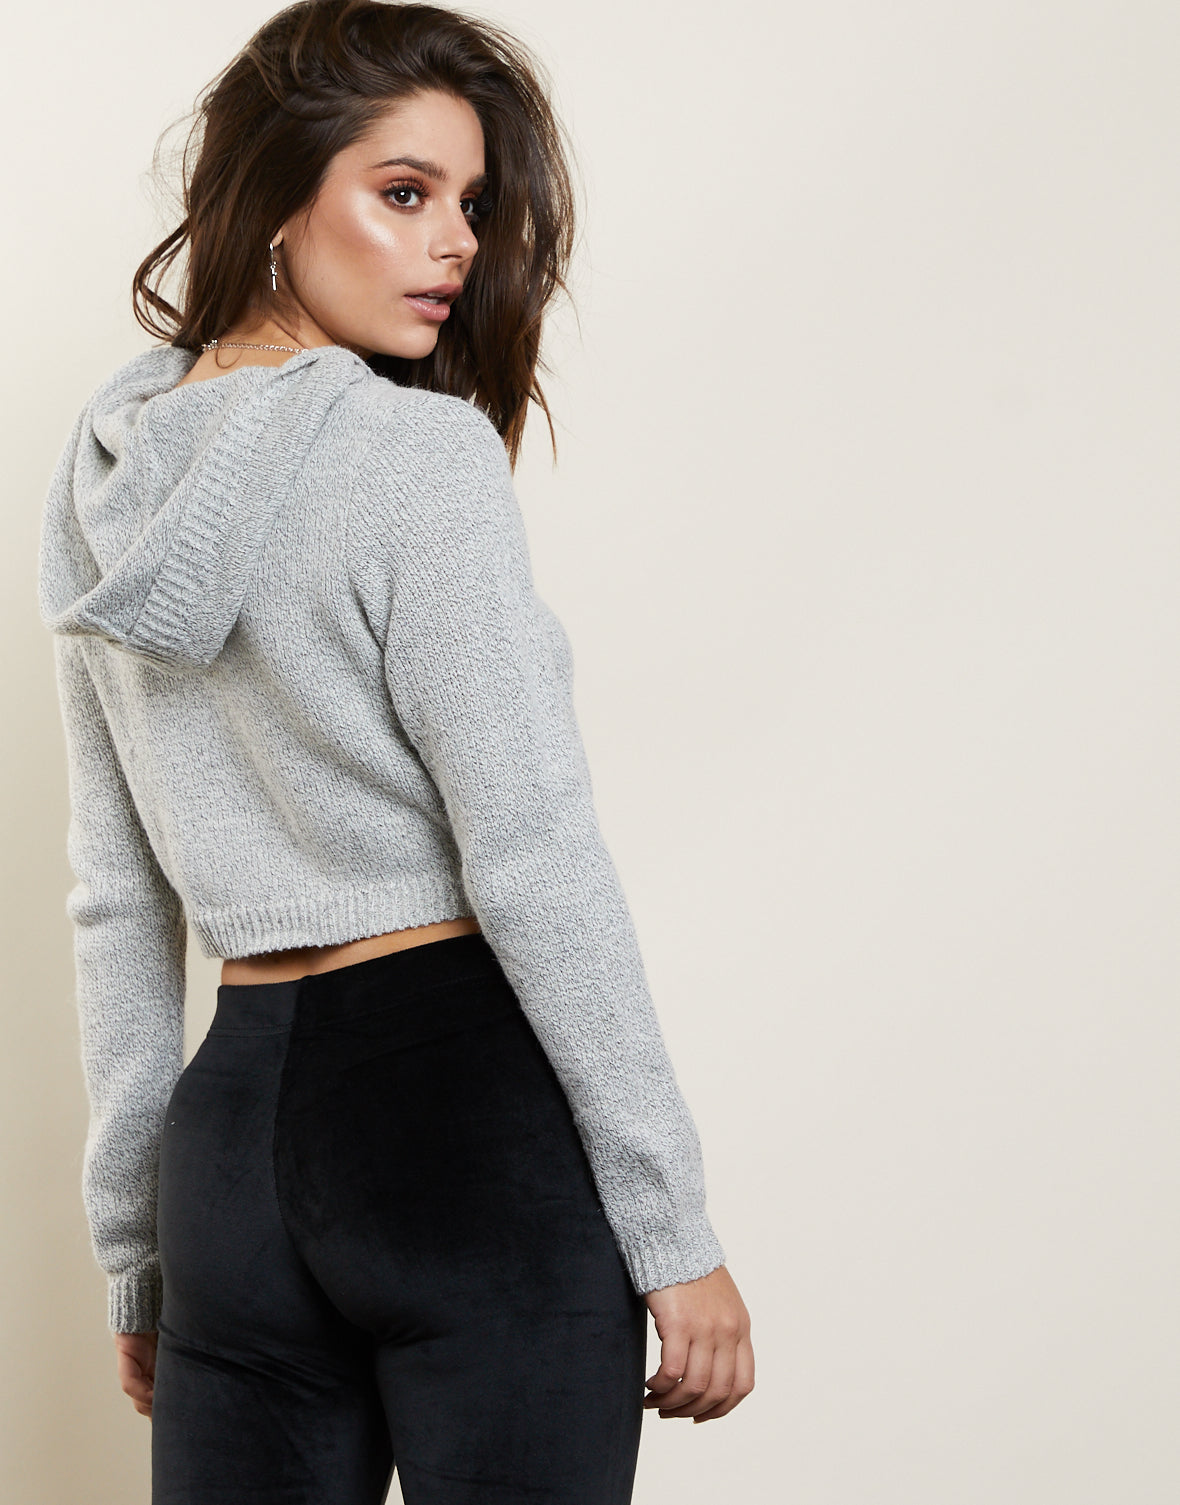 Sweet Dreams Cropped Sweater